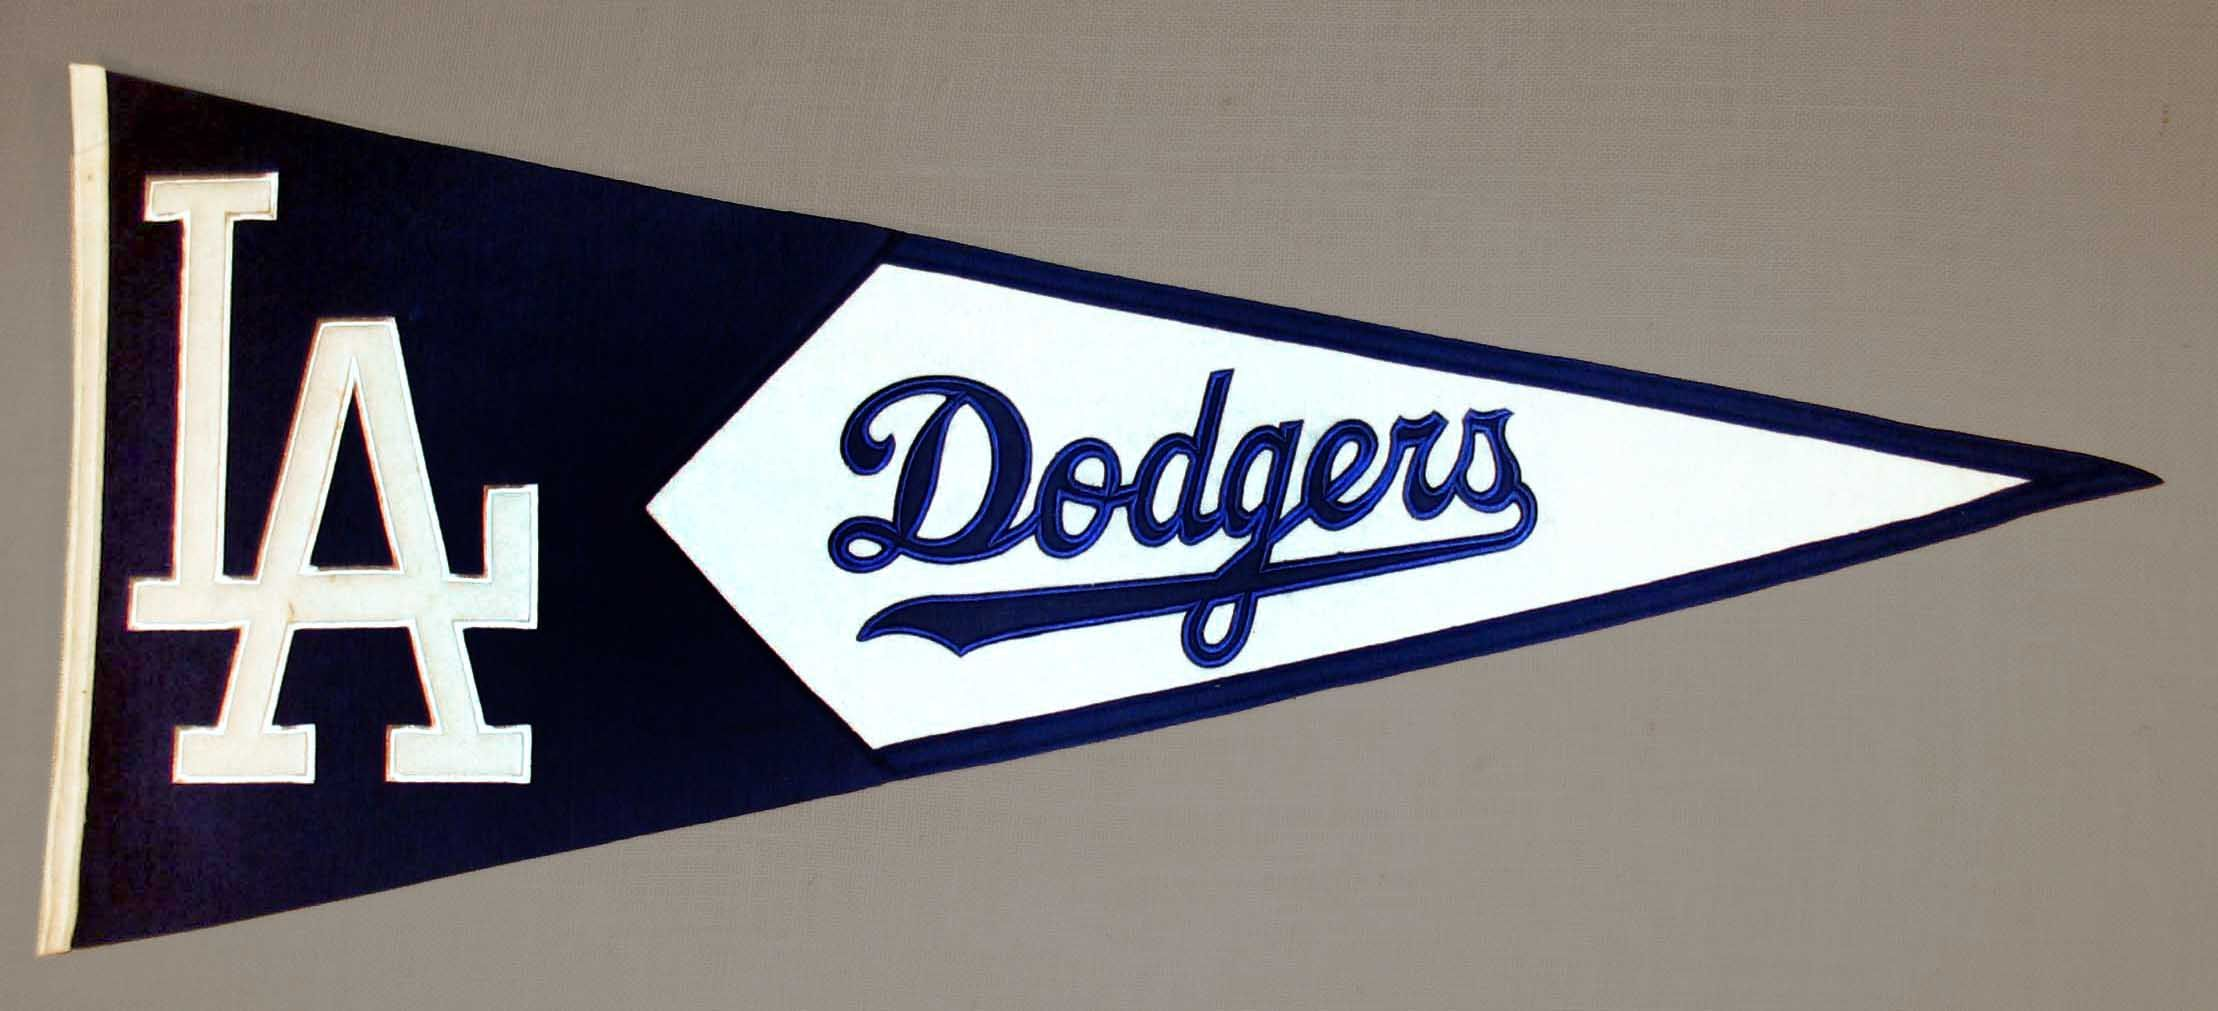 Los Angeles Dodgers Logo Flag Wallpapers Hd Dodgers Baseball Pennants Los Angeles Dodgers Logo